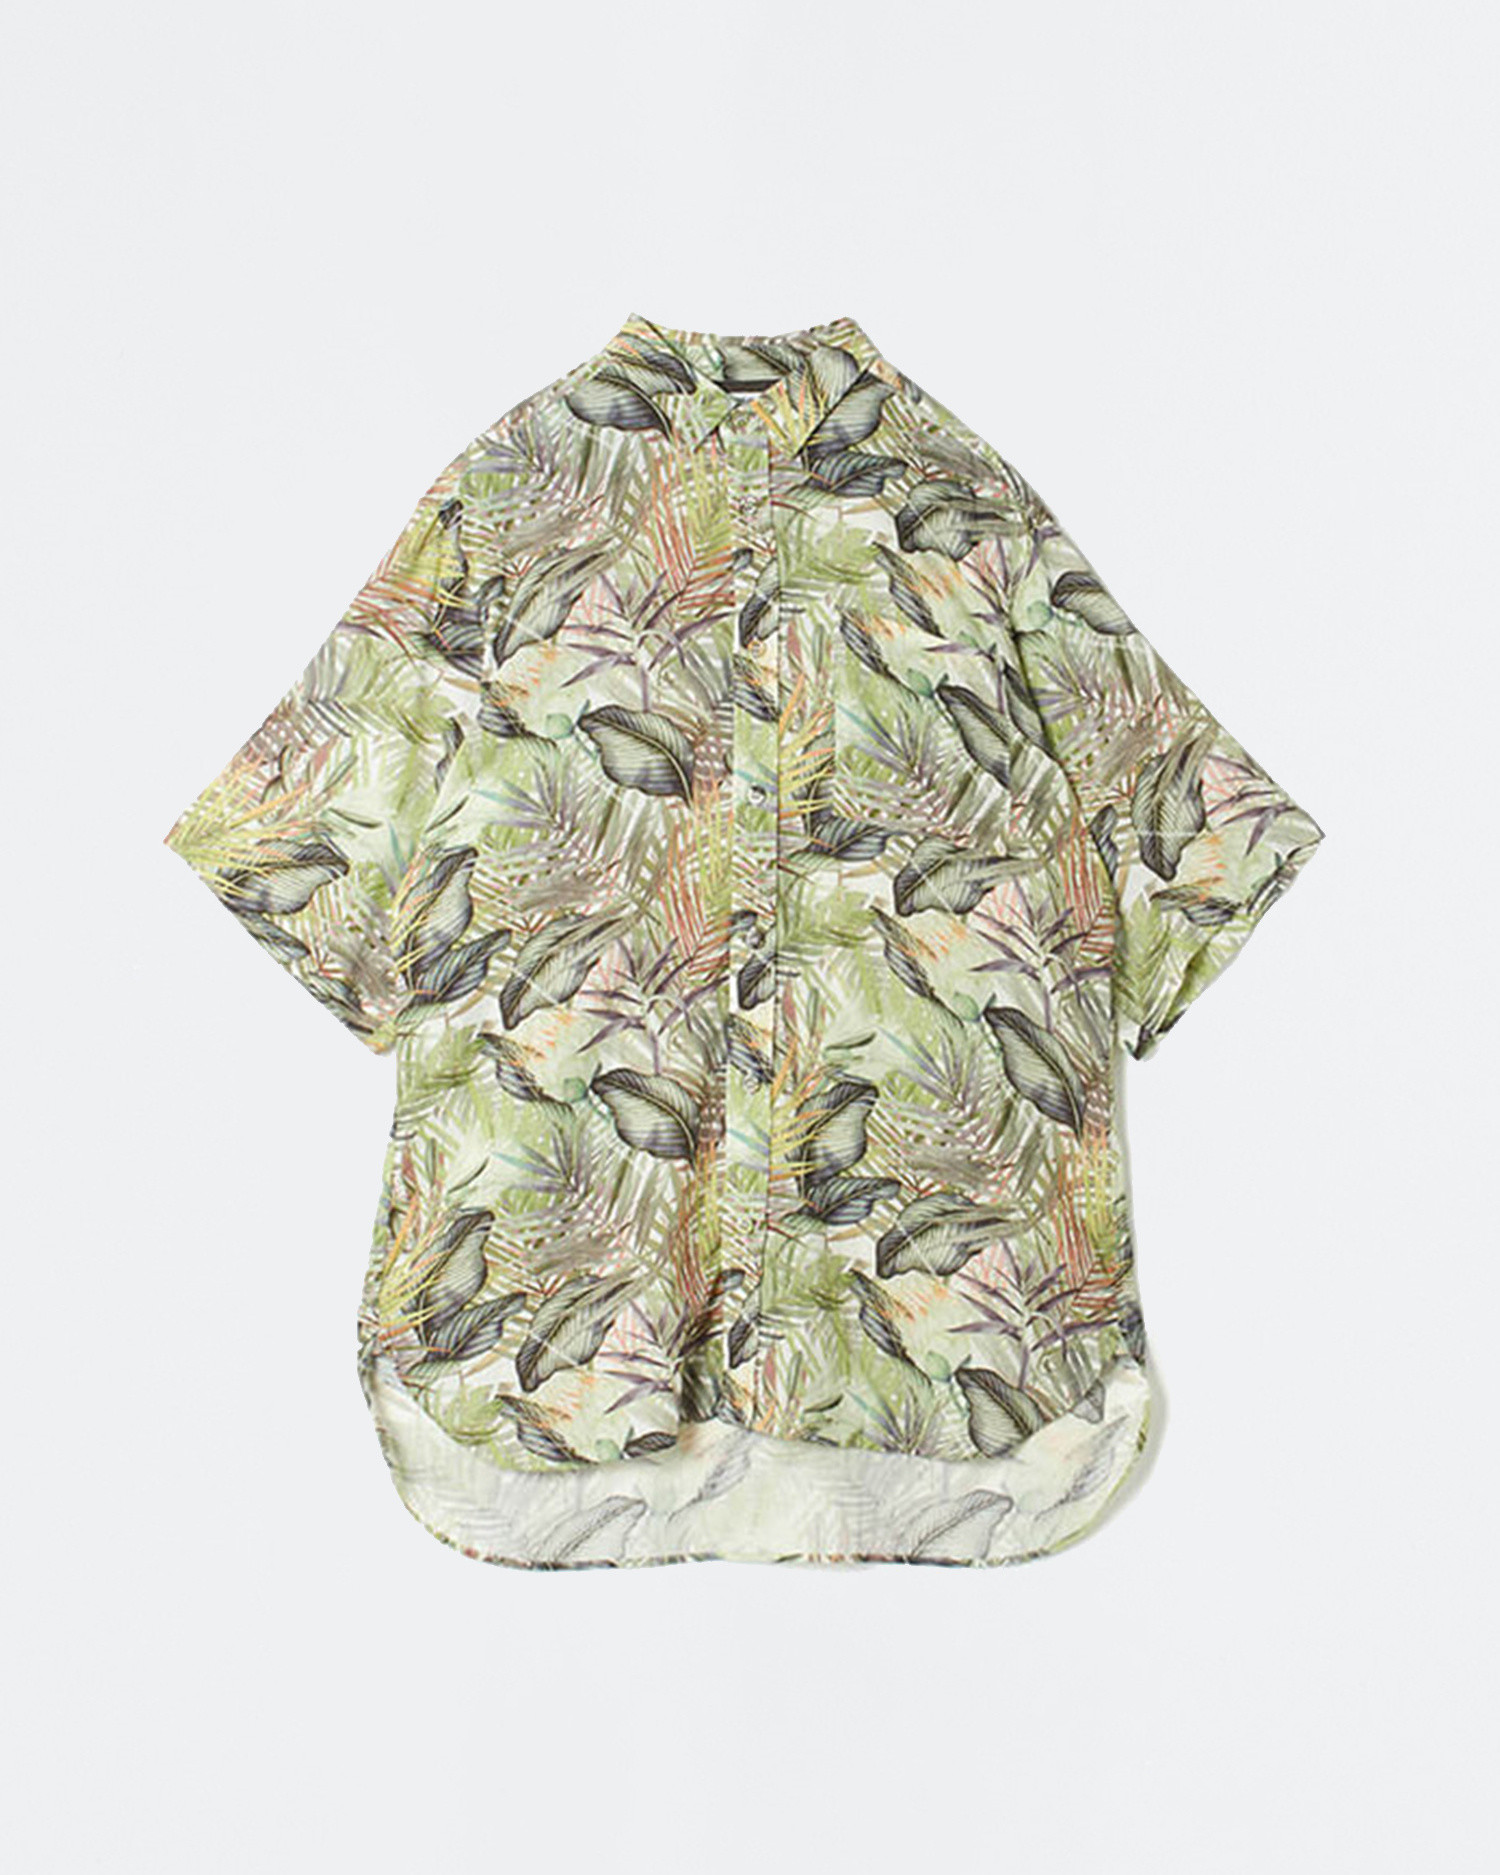 White Mountaineering Woven Shirt Botanical Printed Big Half Sleeves Khaki